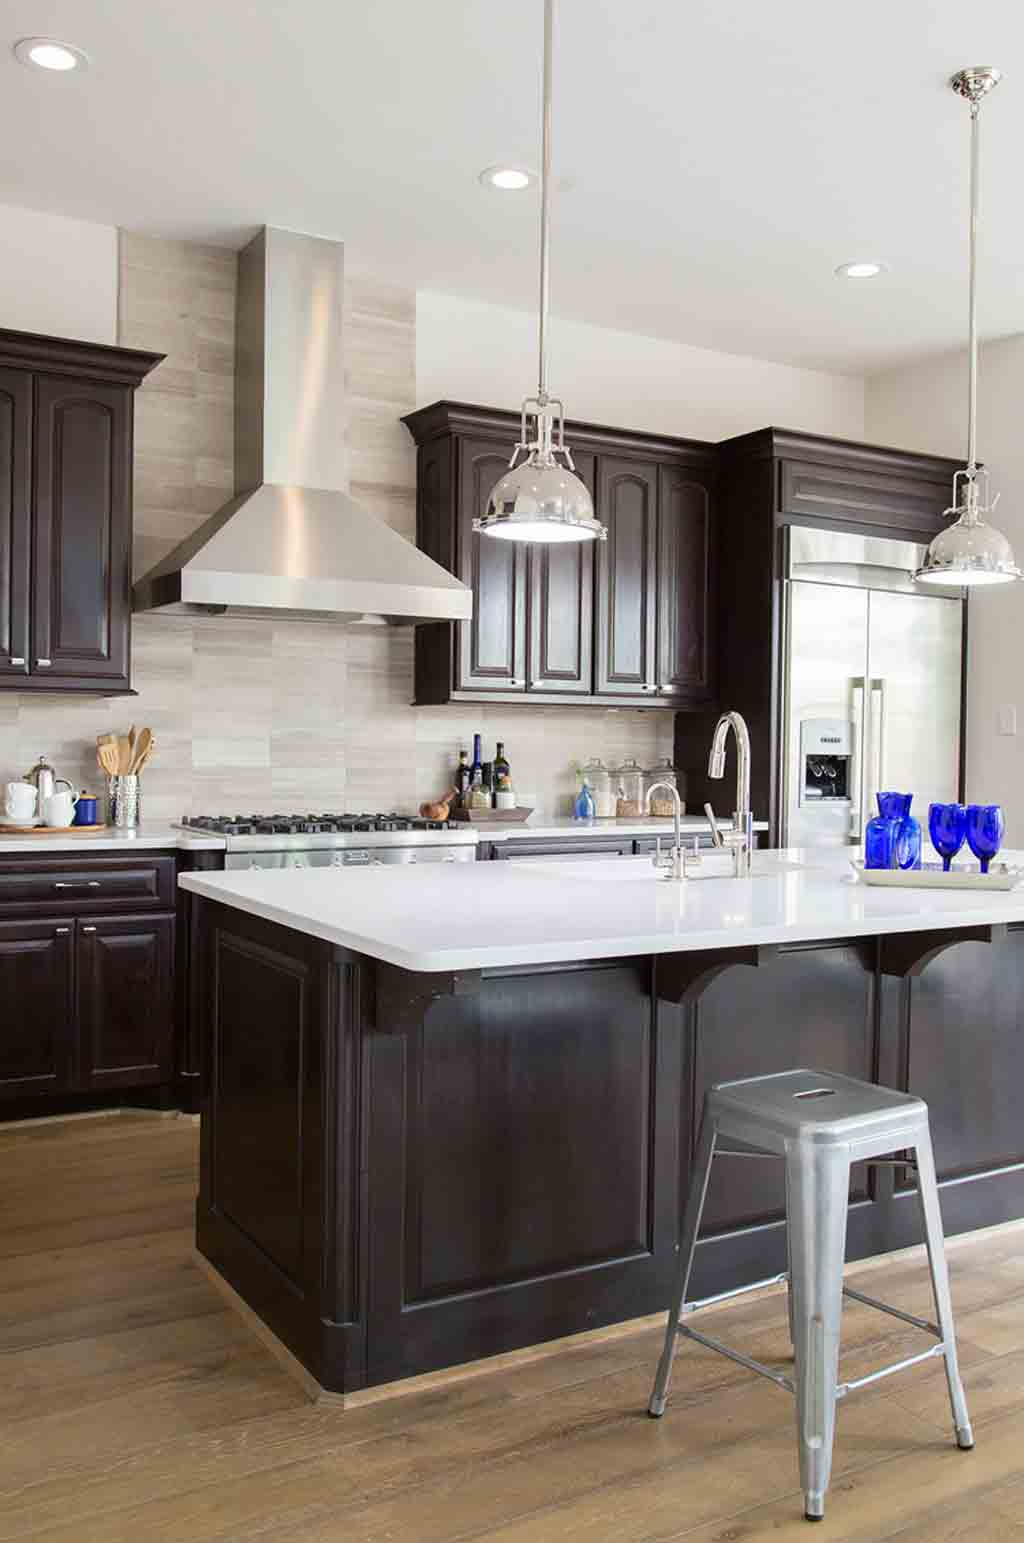 Espresso kitchen cabinets with greige wall color by Carla ...